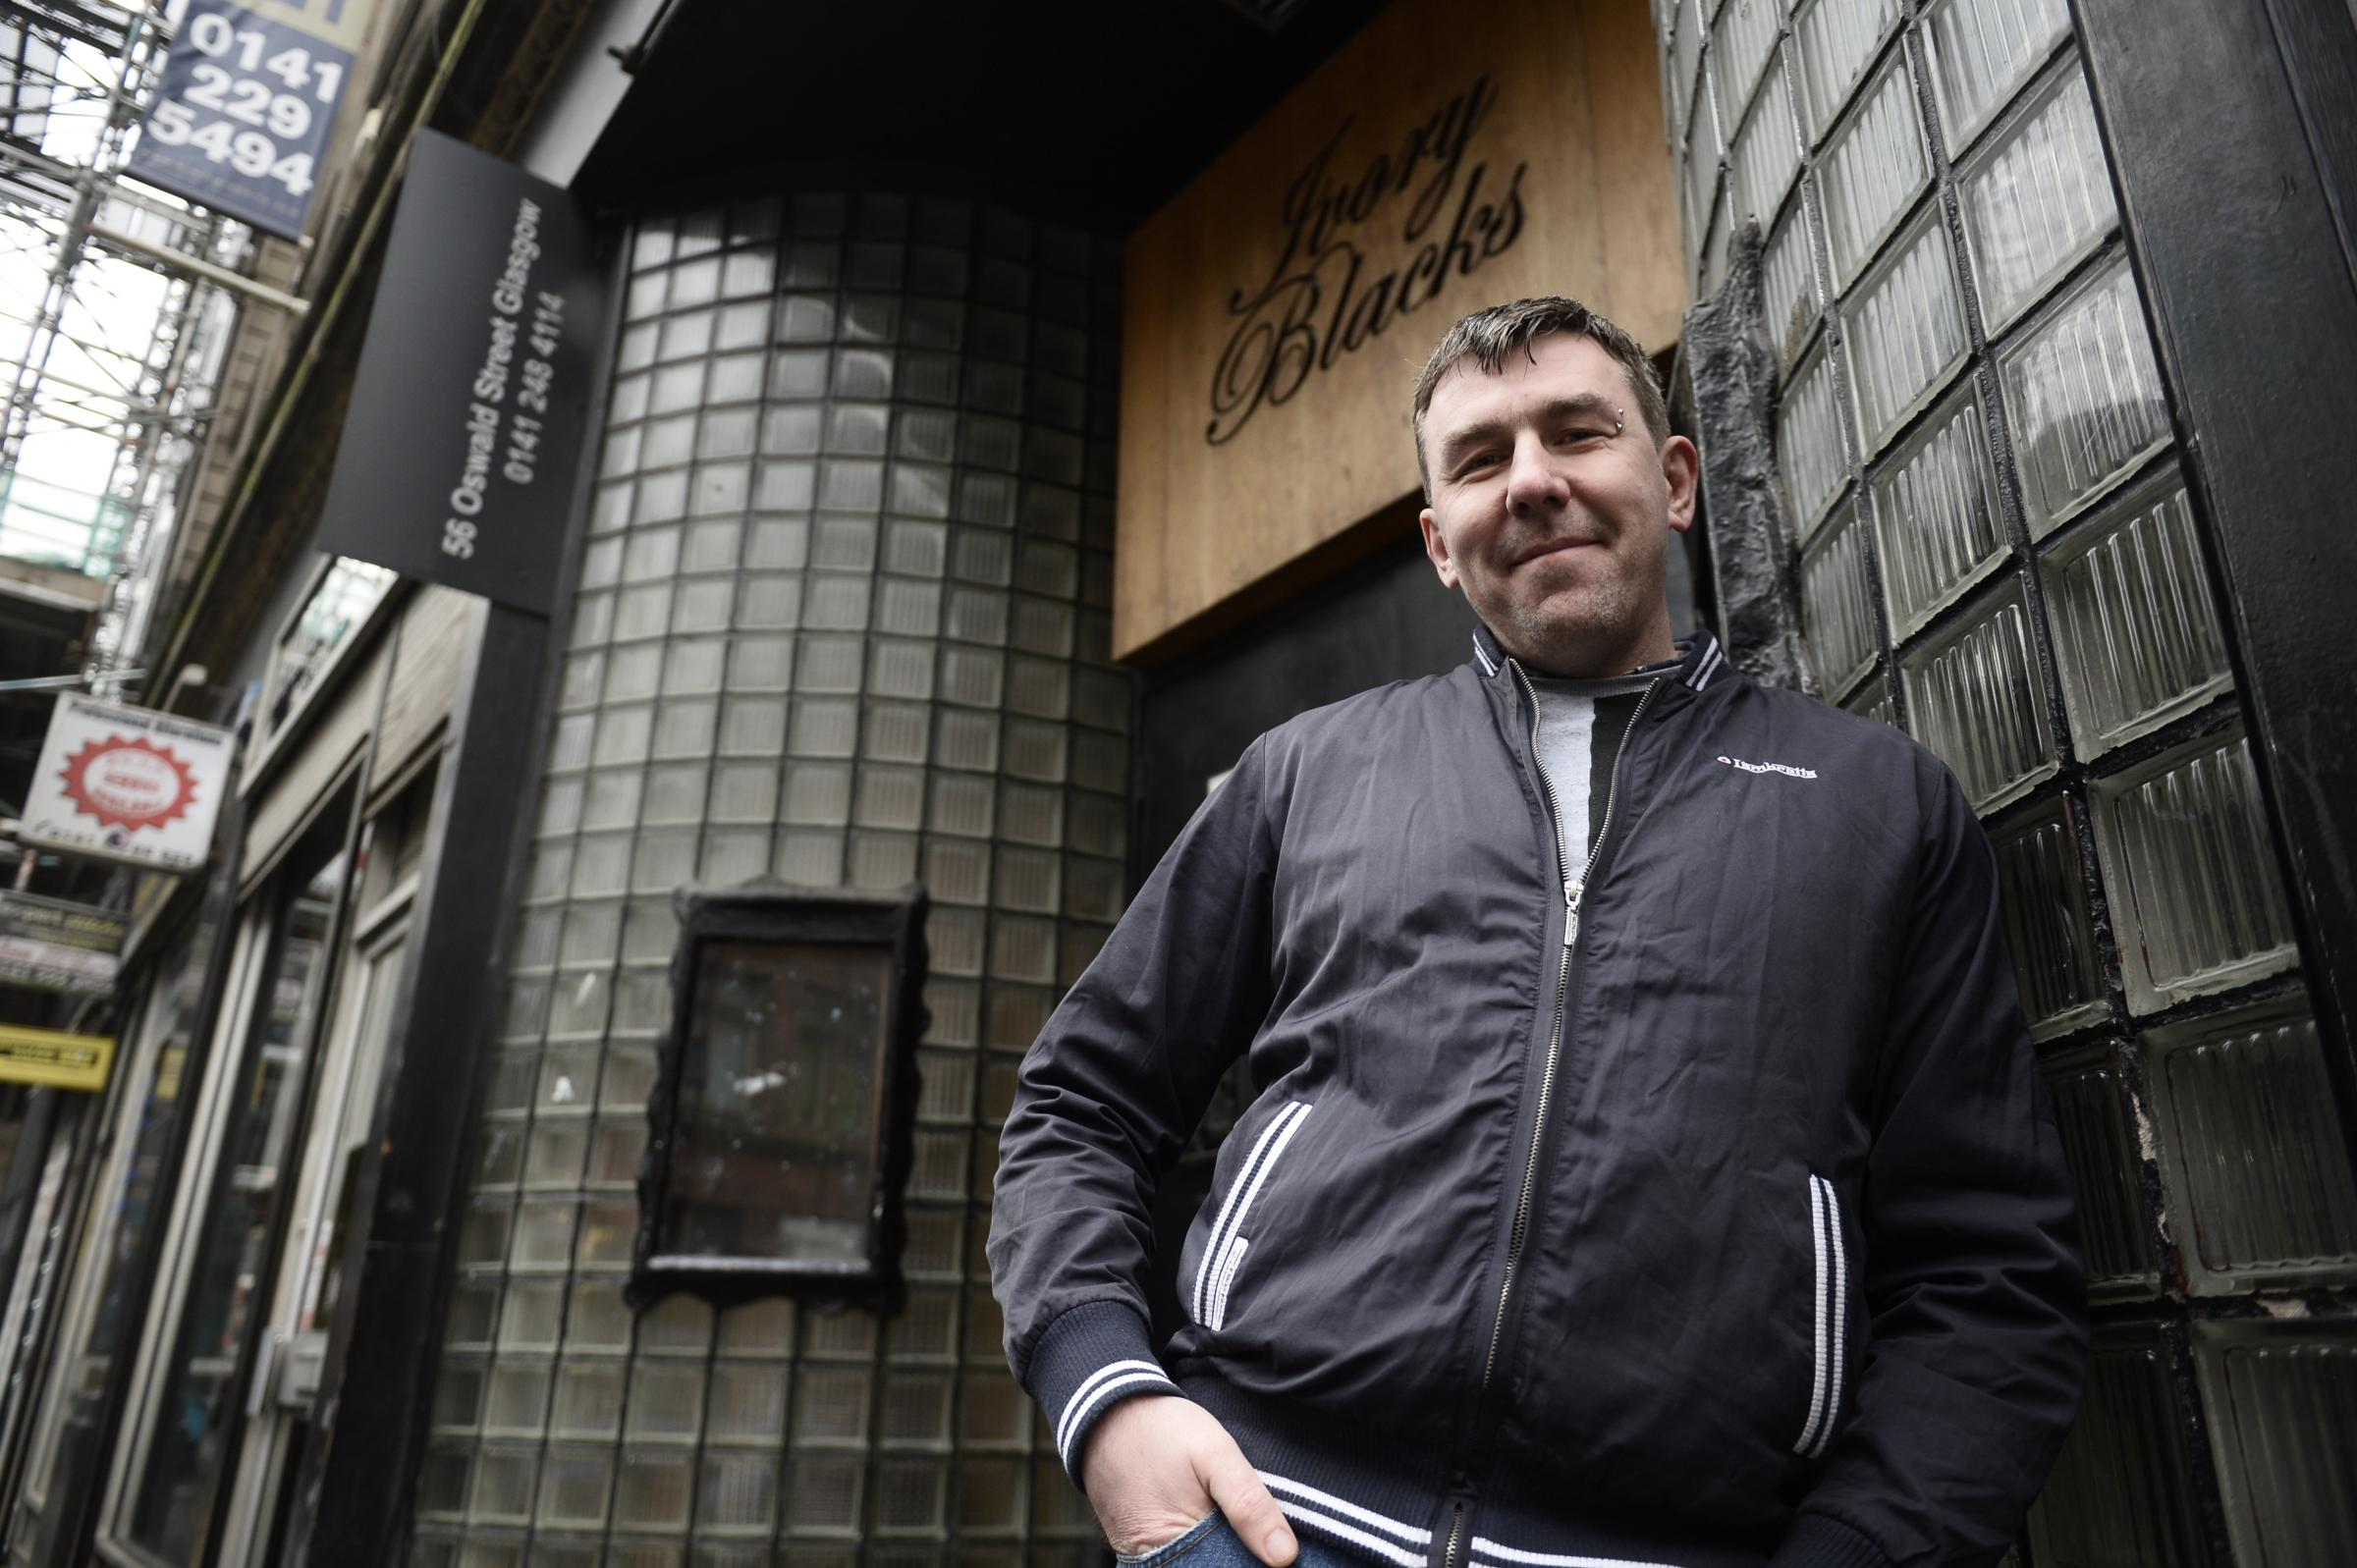 Ronnie Whittaker says city centre club refused to host his 'dry disco'